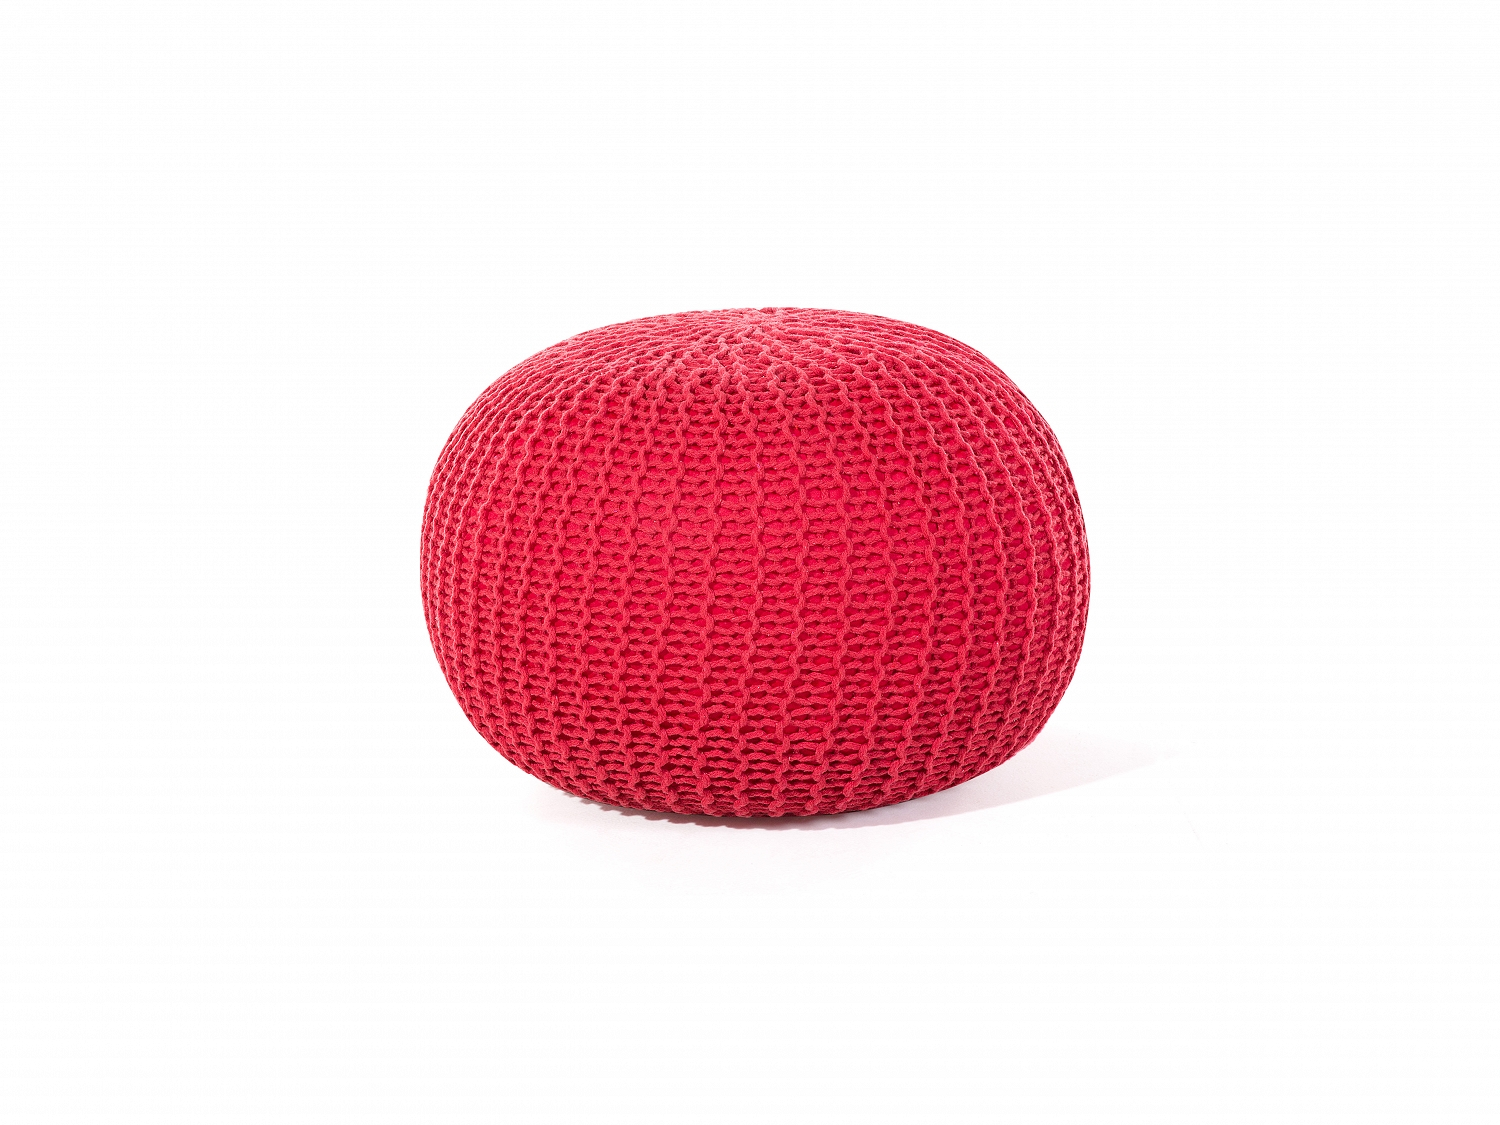 pouf coussin de sol pouf rouge coussin rouge pouf d coratif pouf de salon ebay. Black Bedroom Furniture Sets. Home Design Ideas